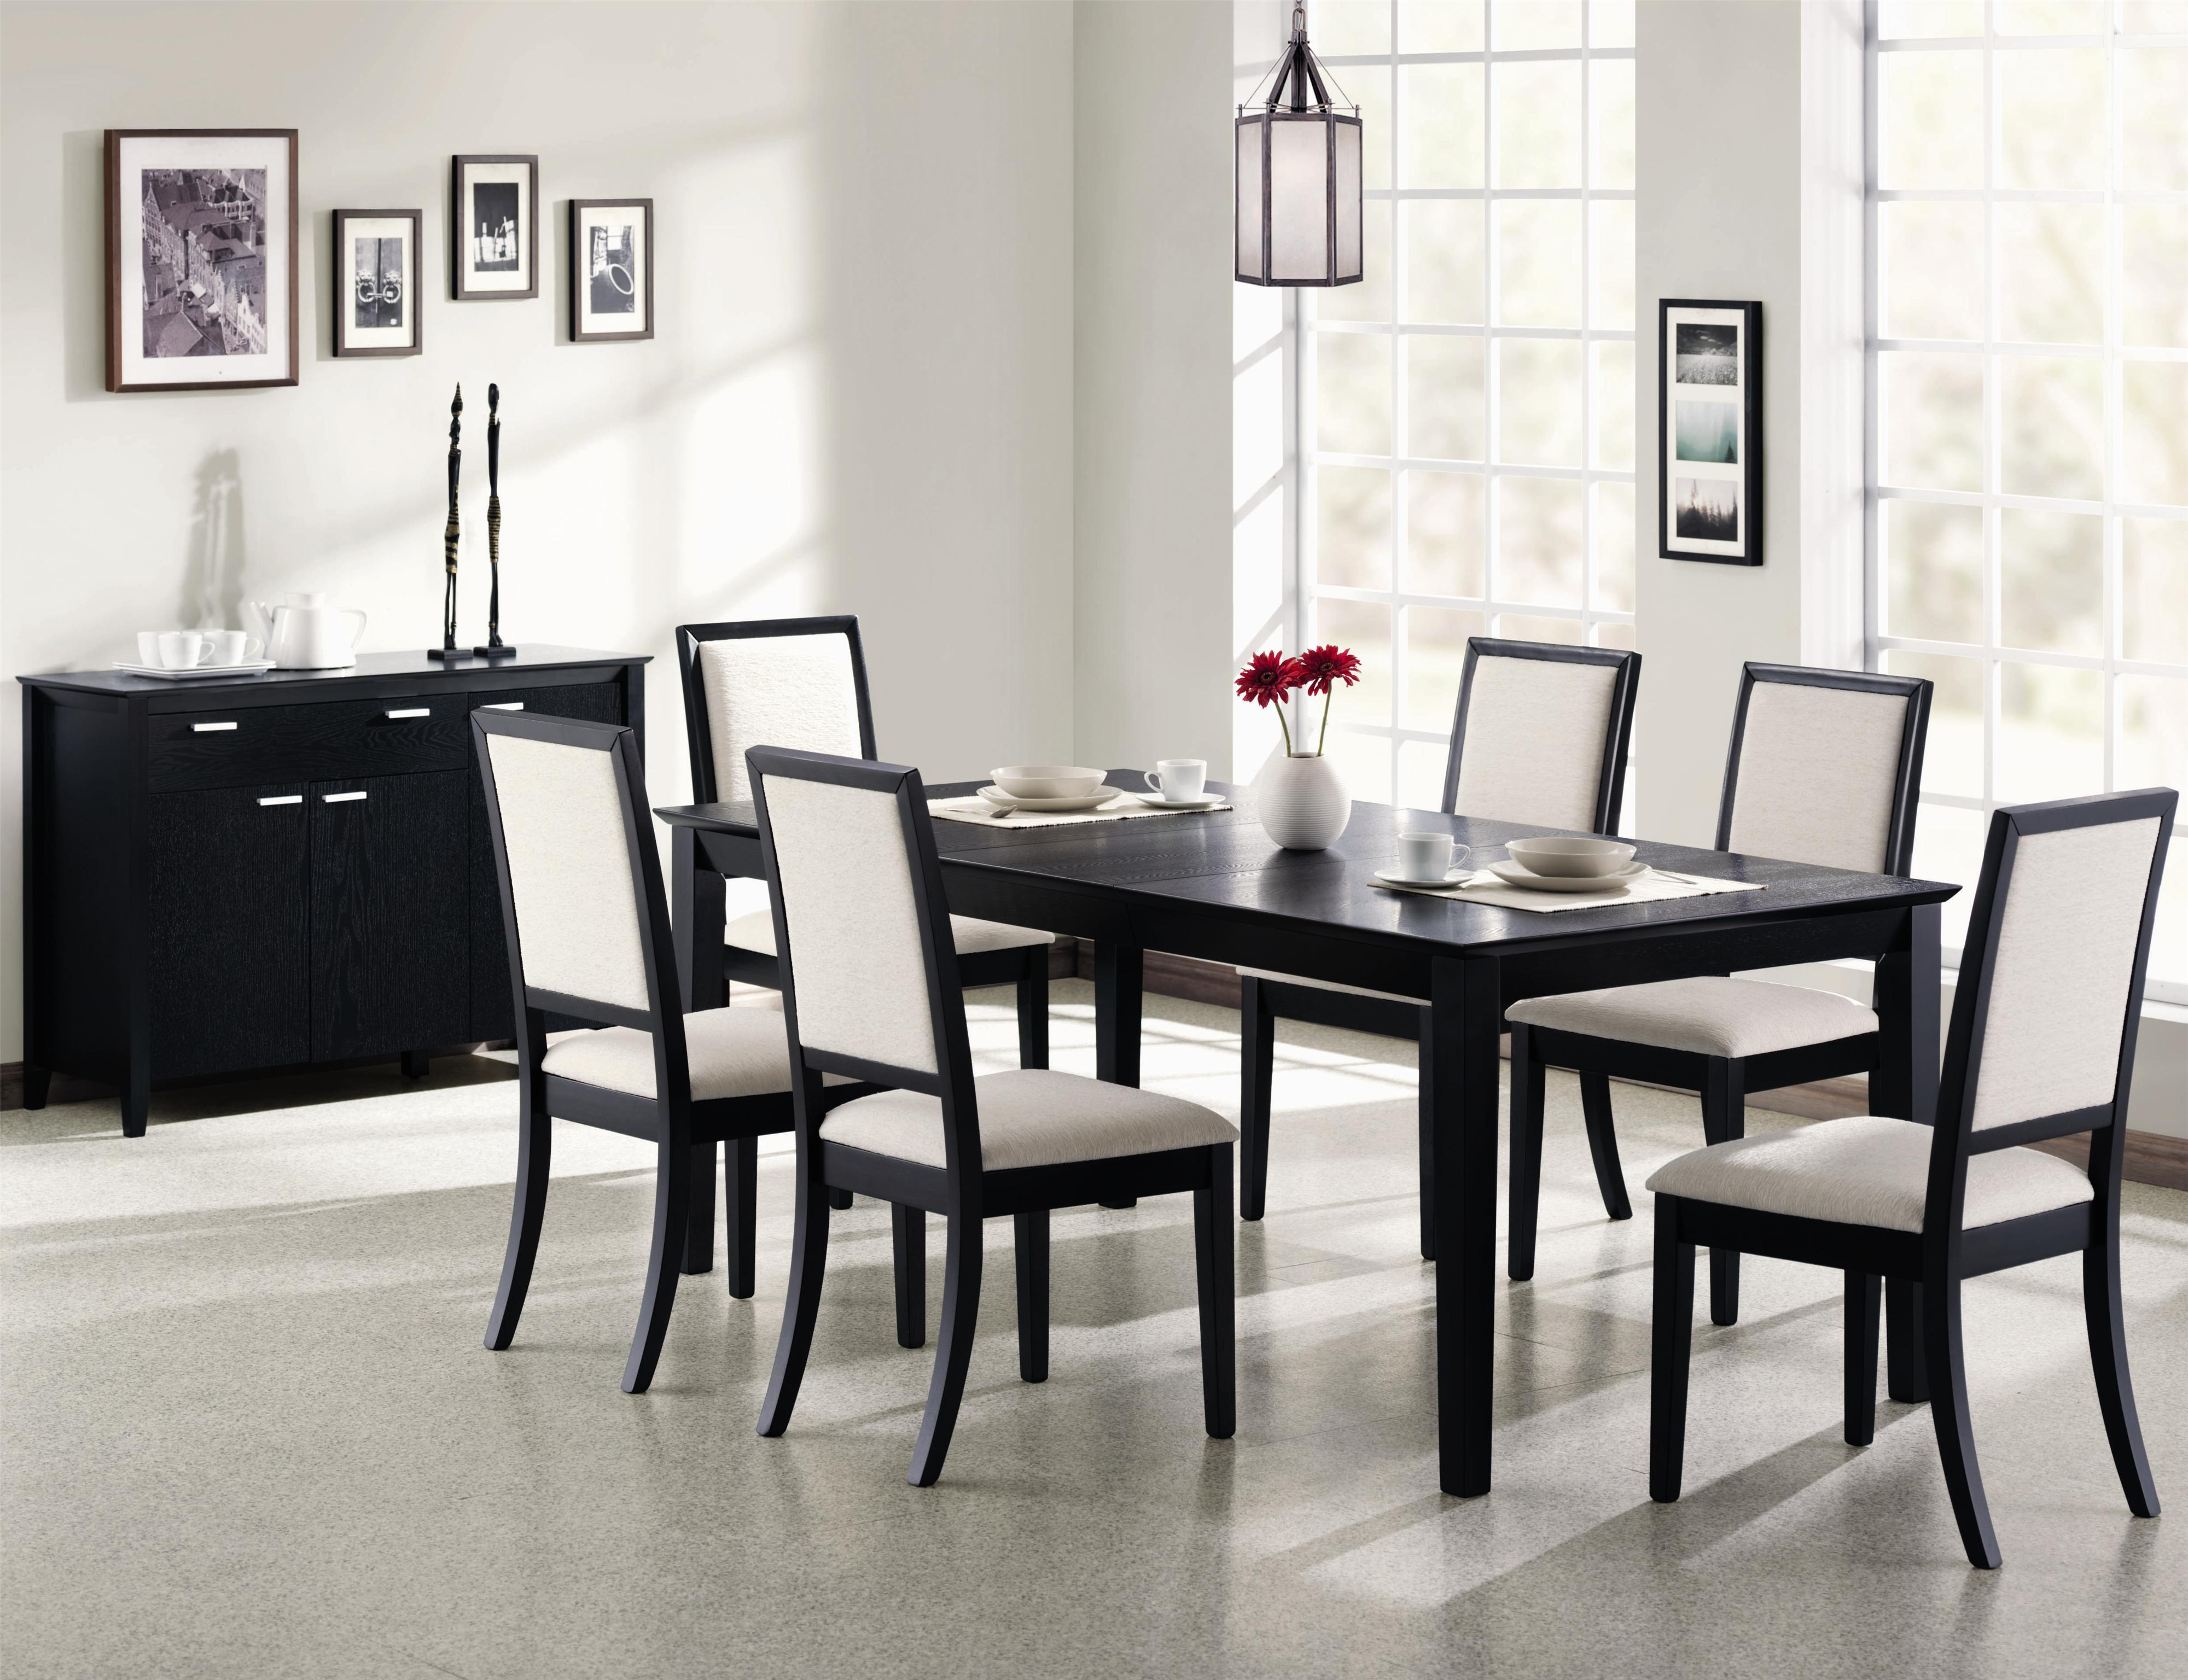 Coaster lexton 7 piece dining set michaels furniture warehouse dining 7 or more piece sets